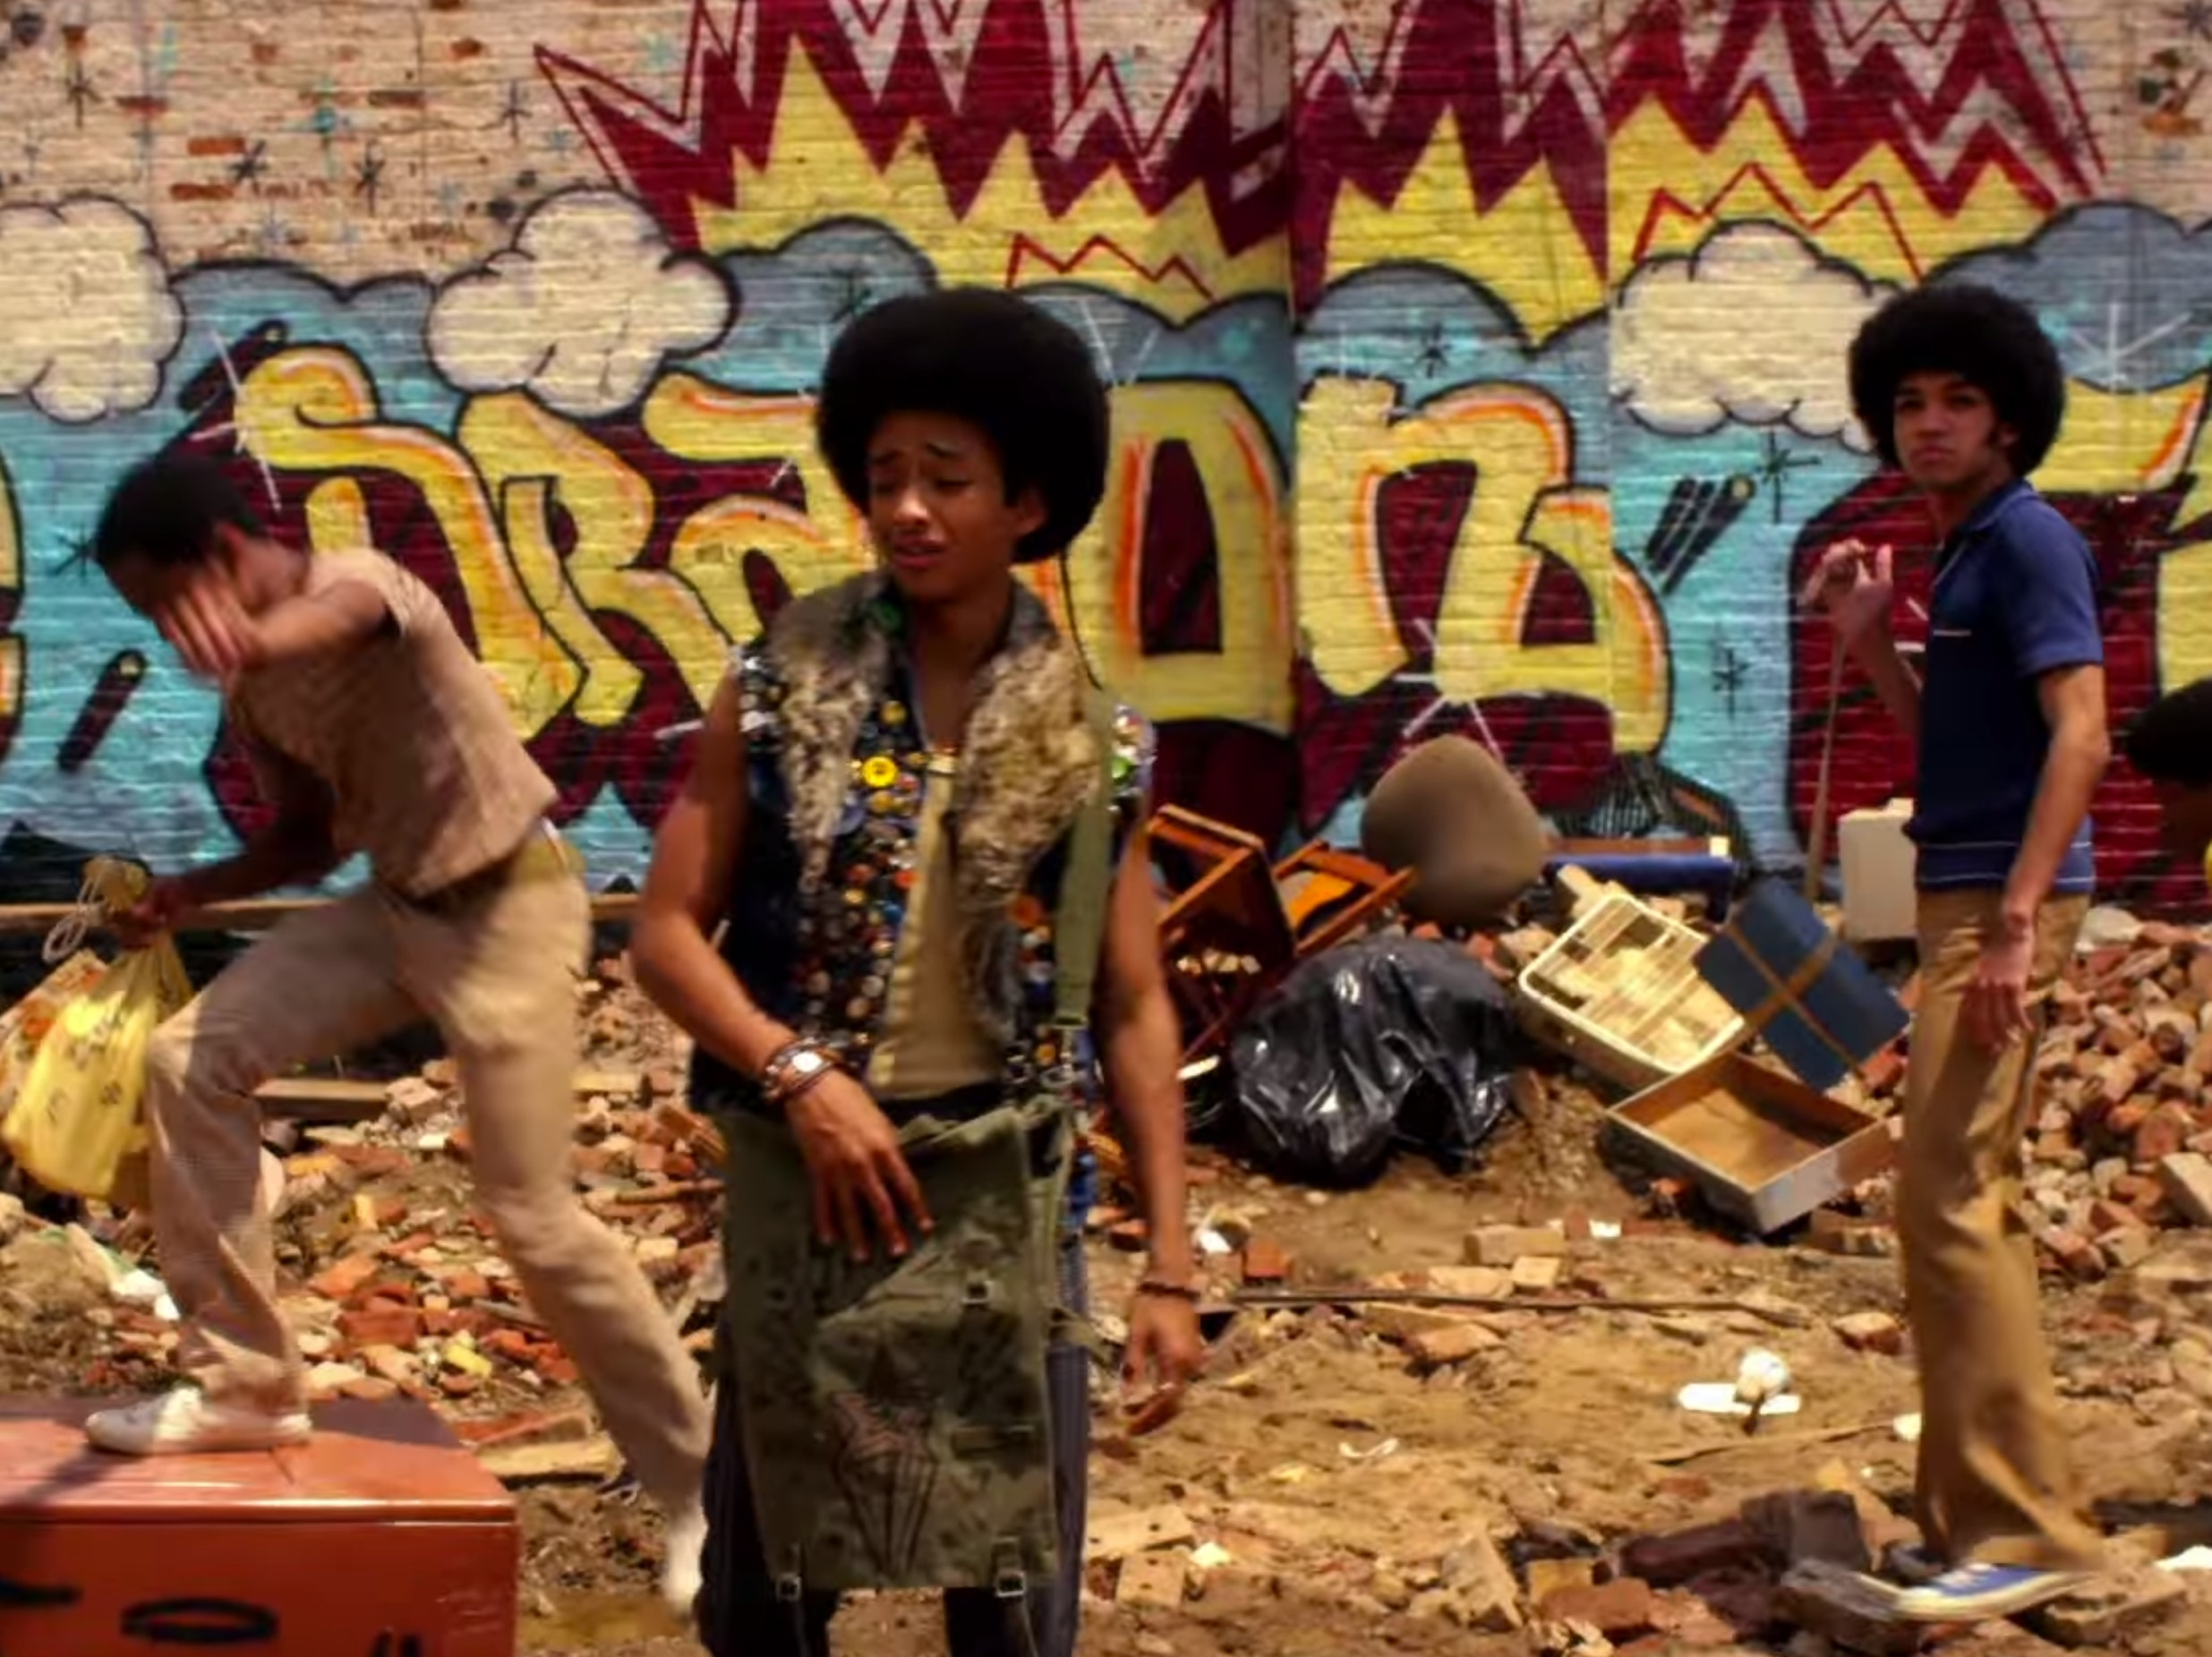 Baz Luhrmann's 'The Get Down' Could Be Worth $120 Million After All